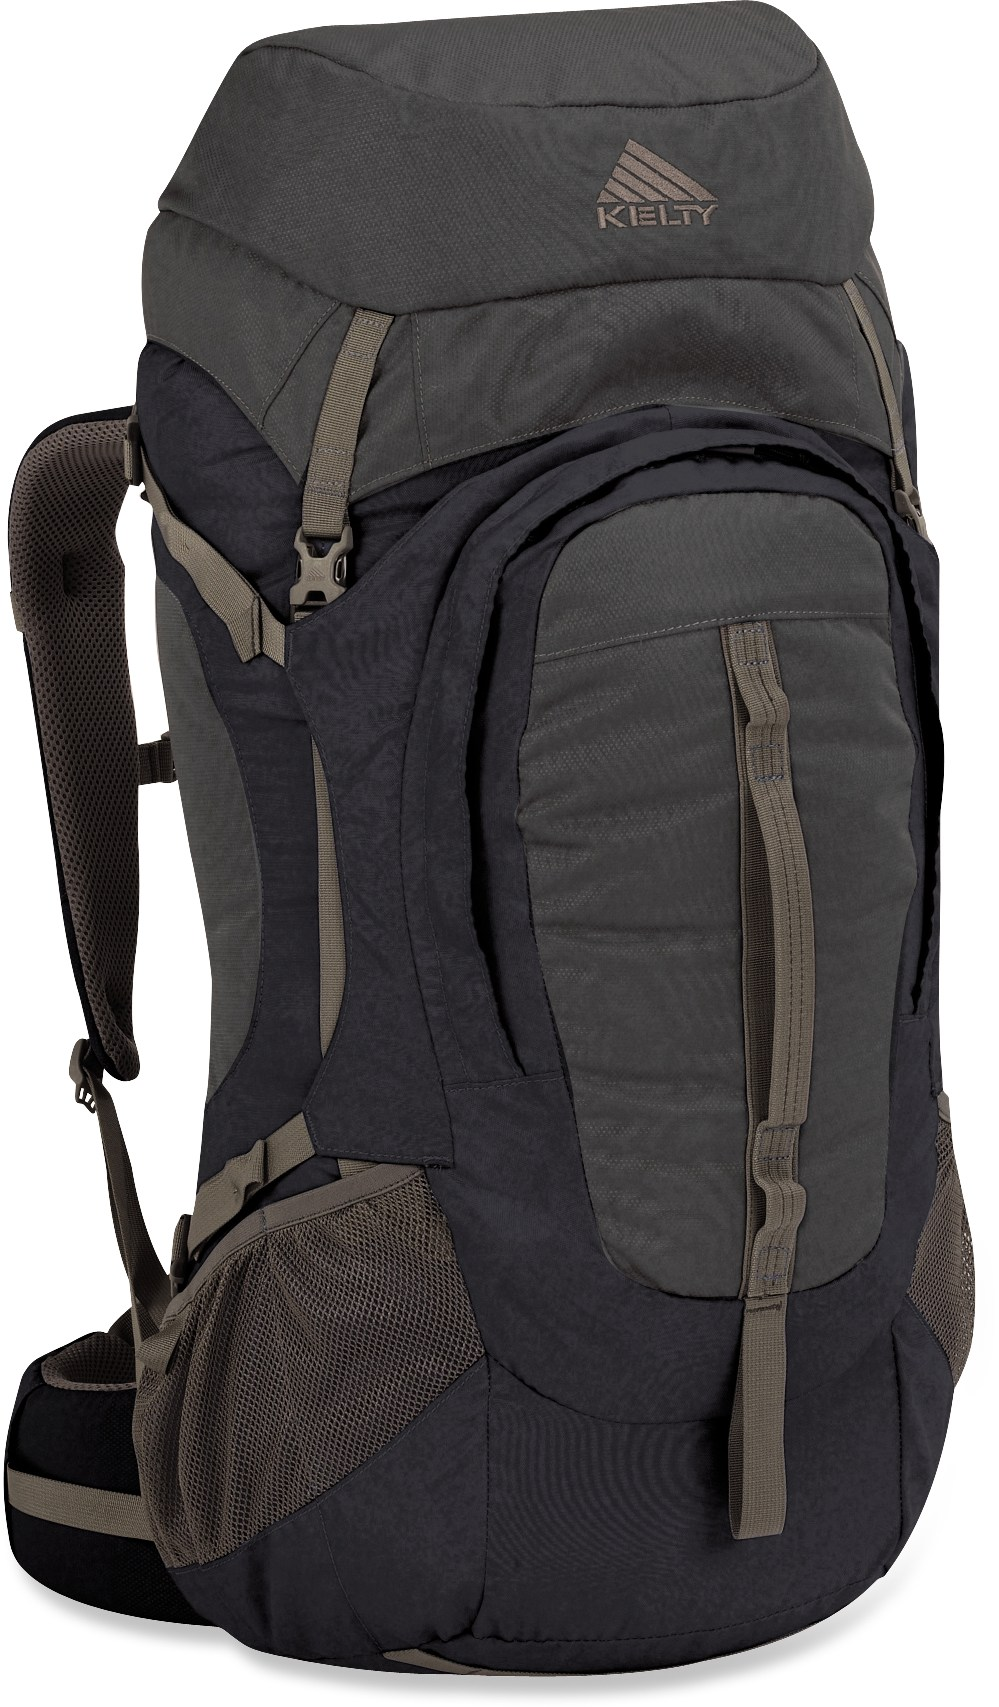 fathersday_backpack